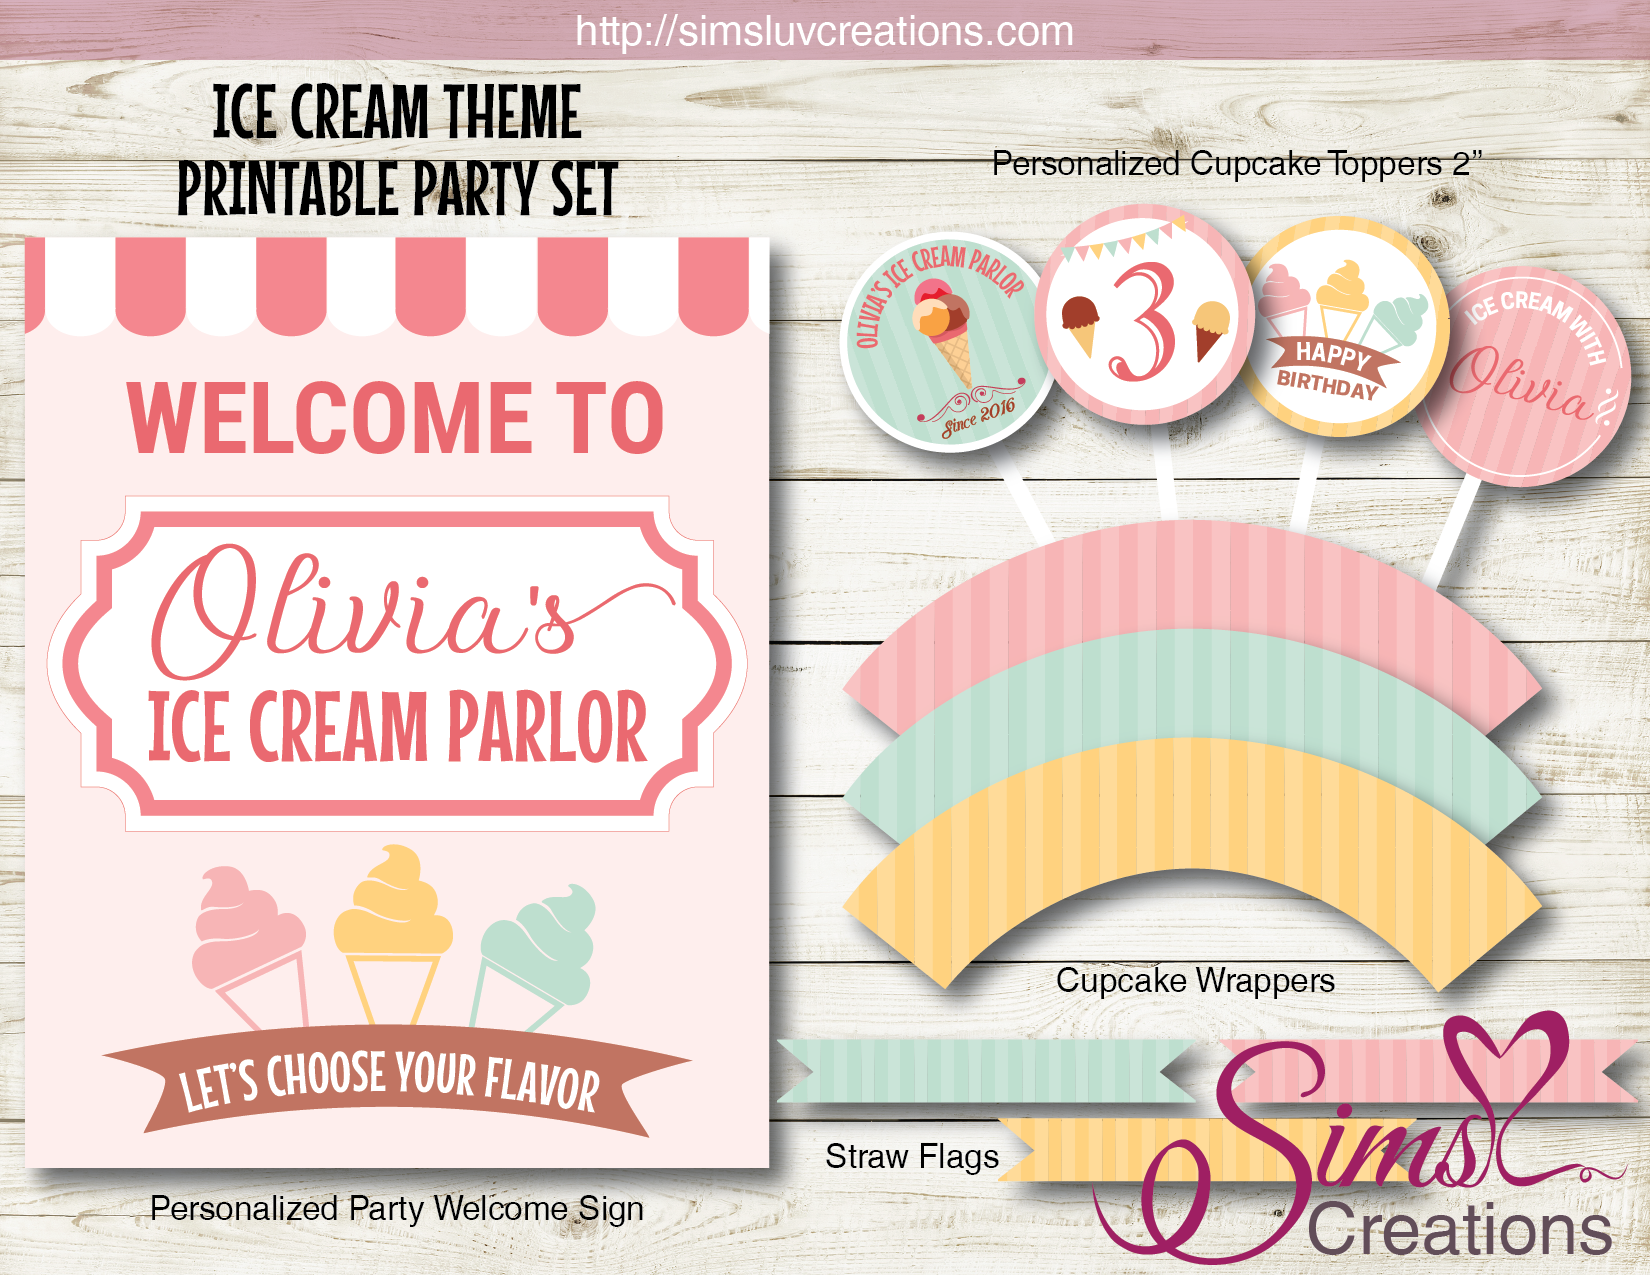 ICE CREAM BIRTHDAY PARTY KIT | PARTY PRINTABLES